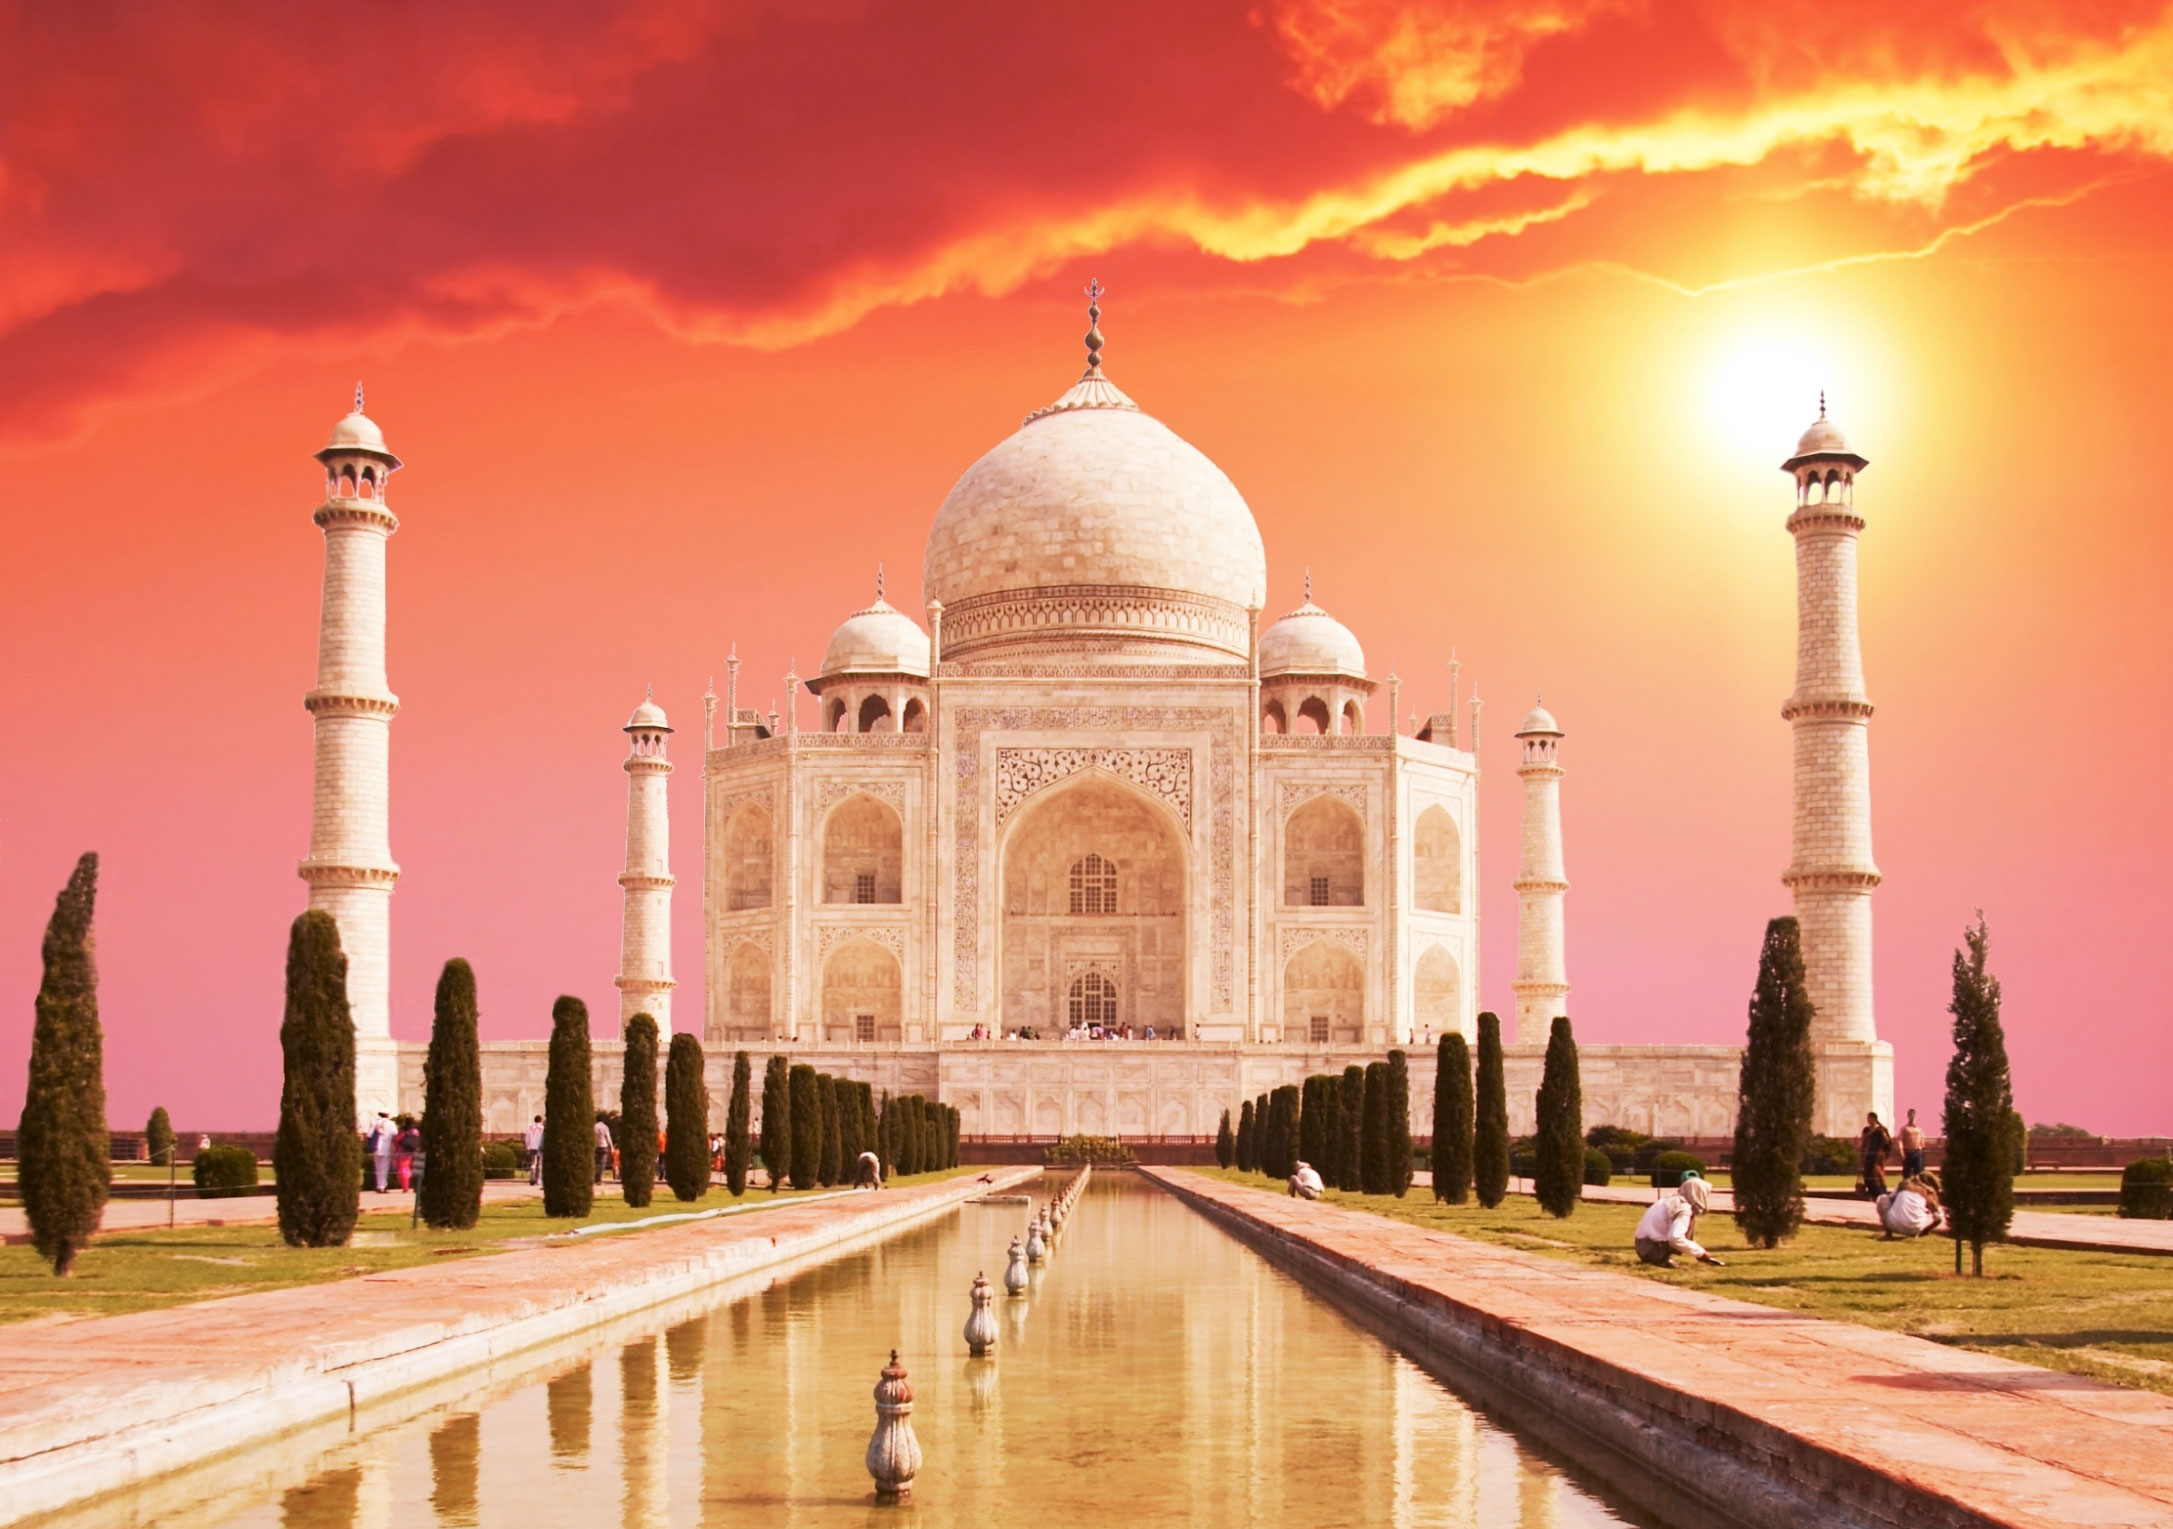 Taj-Mahal sunset quotes